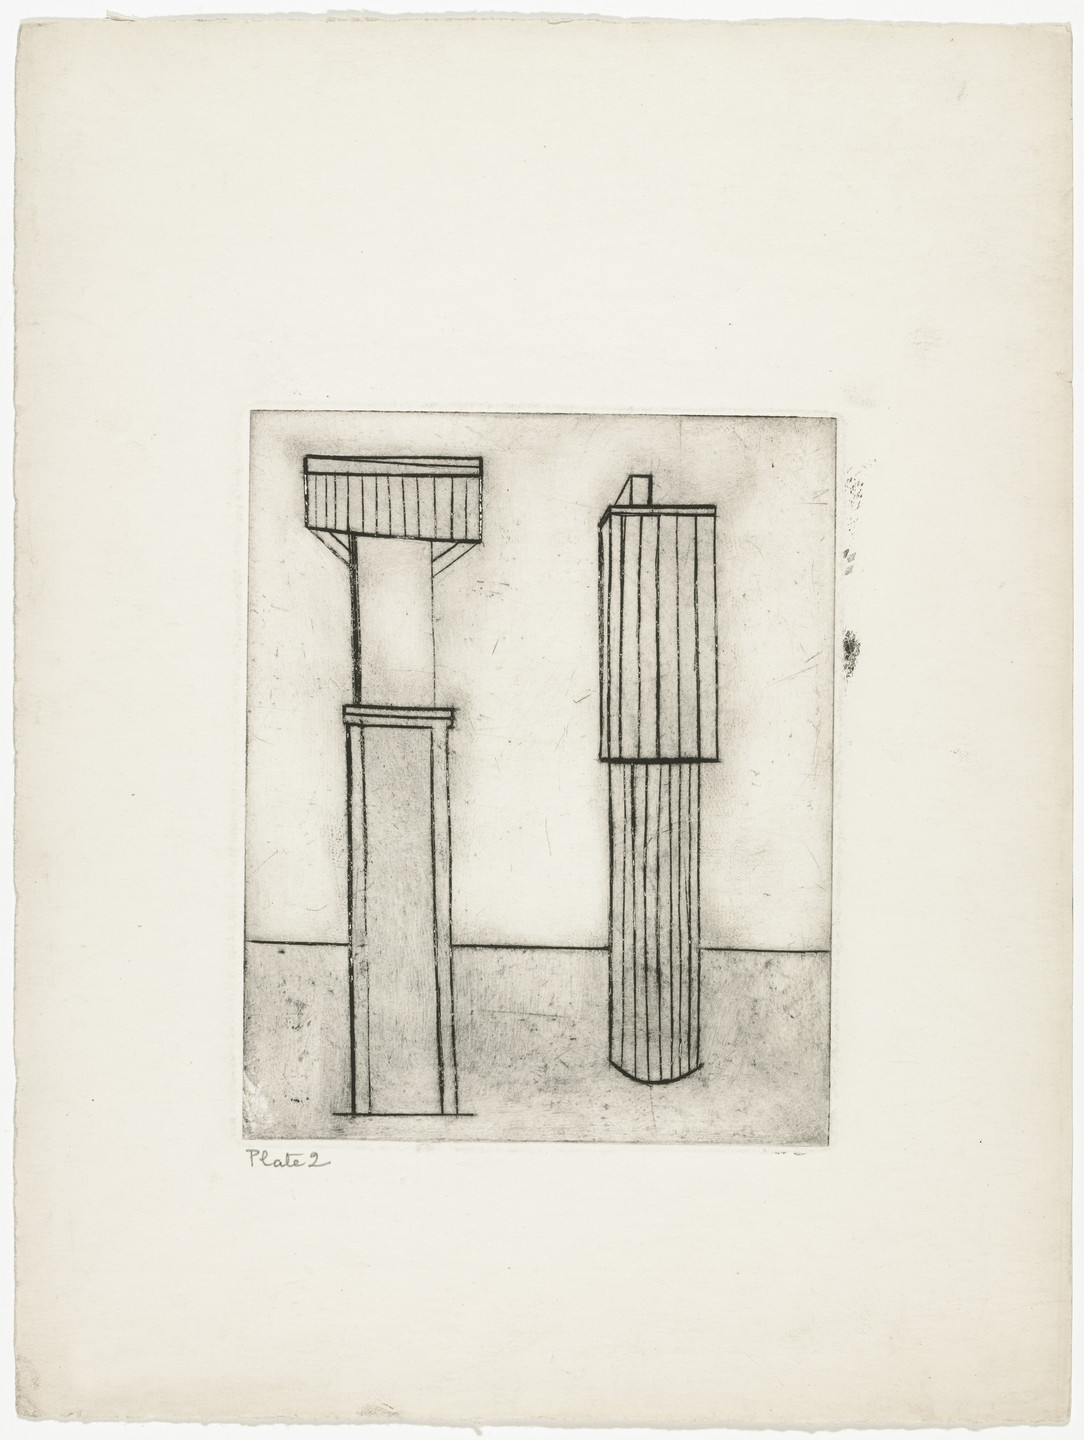 Louise Bourgeois. Plate 2 of 9, from the illustrated book, He Disappeared into Complete Silence. 1946-1947